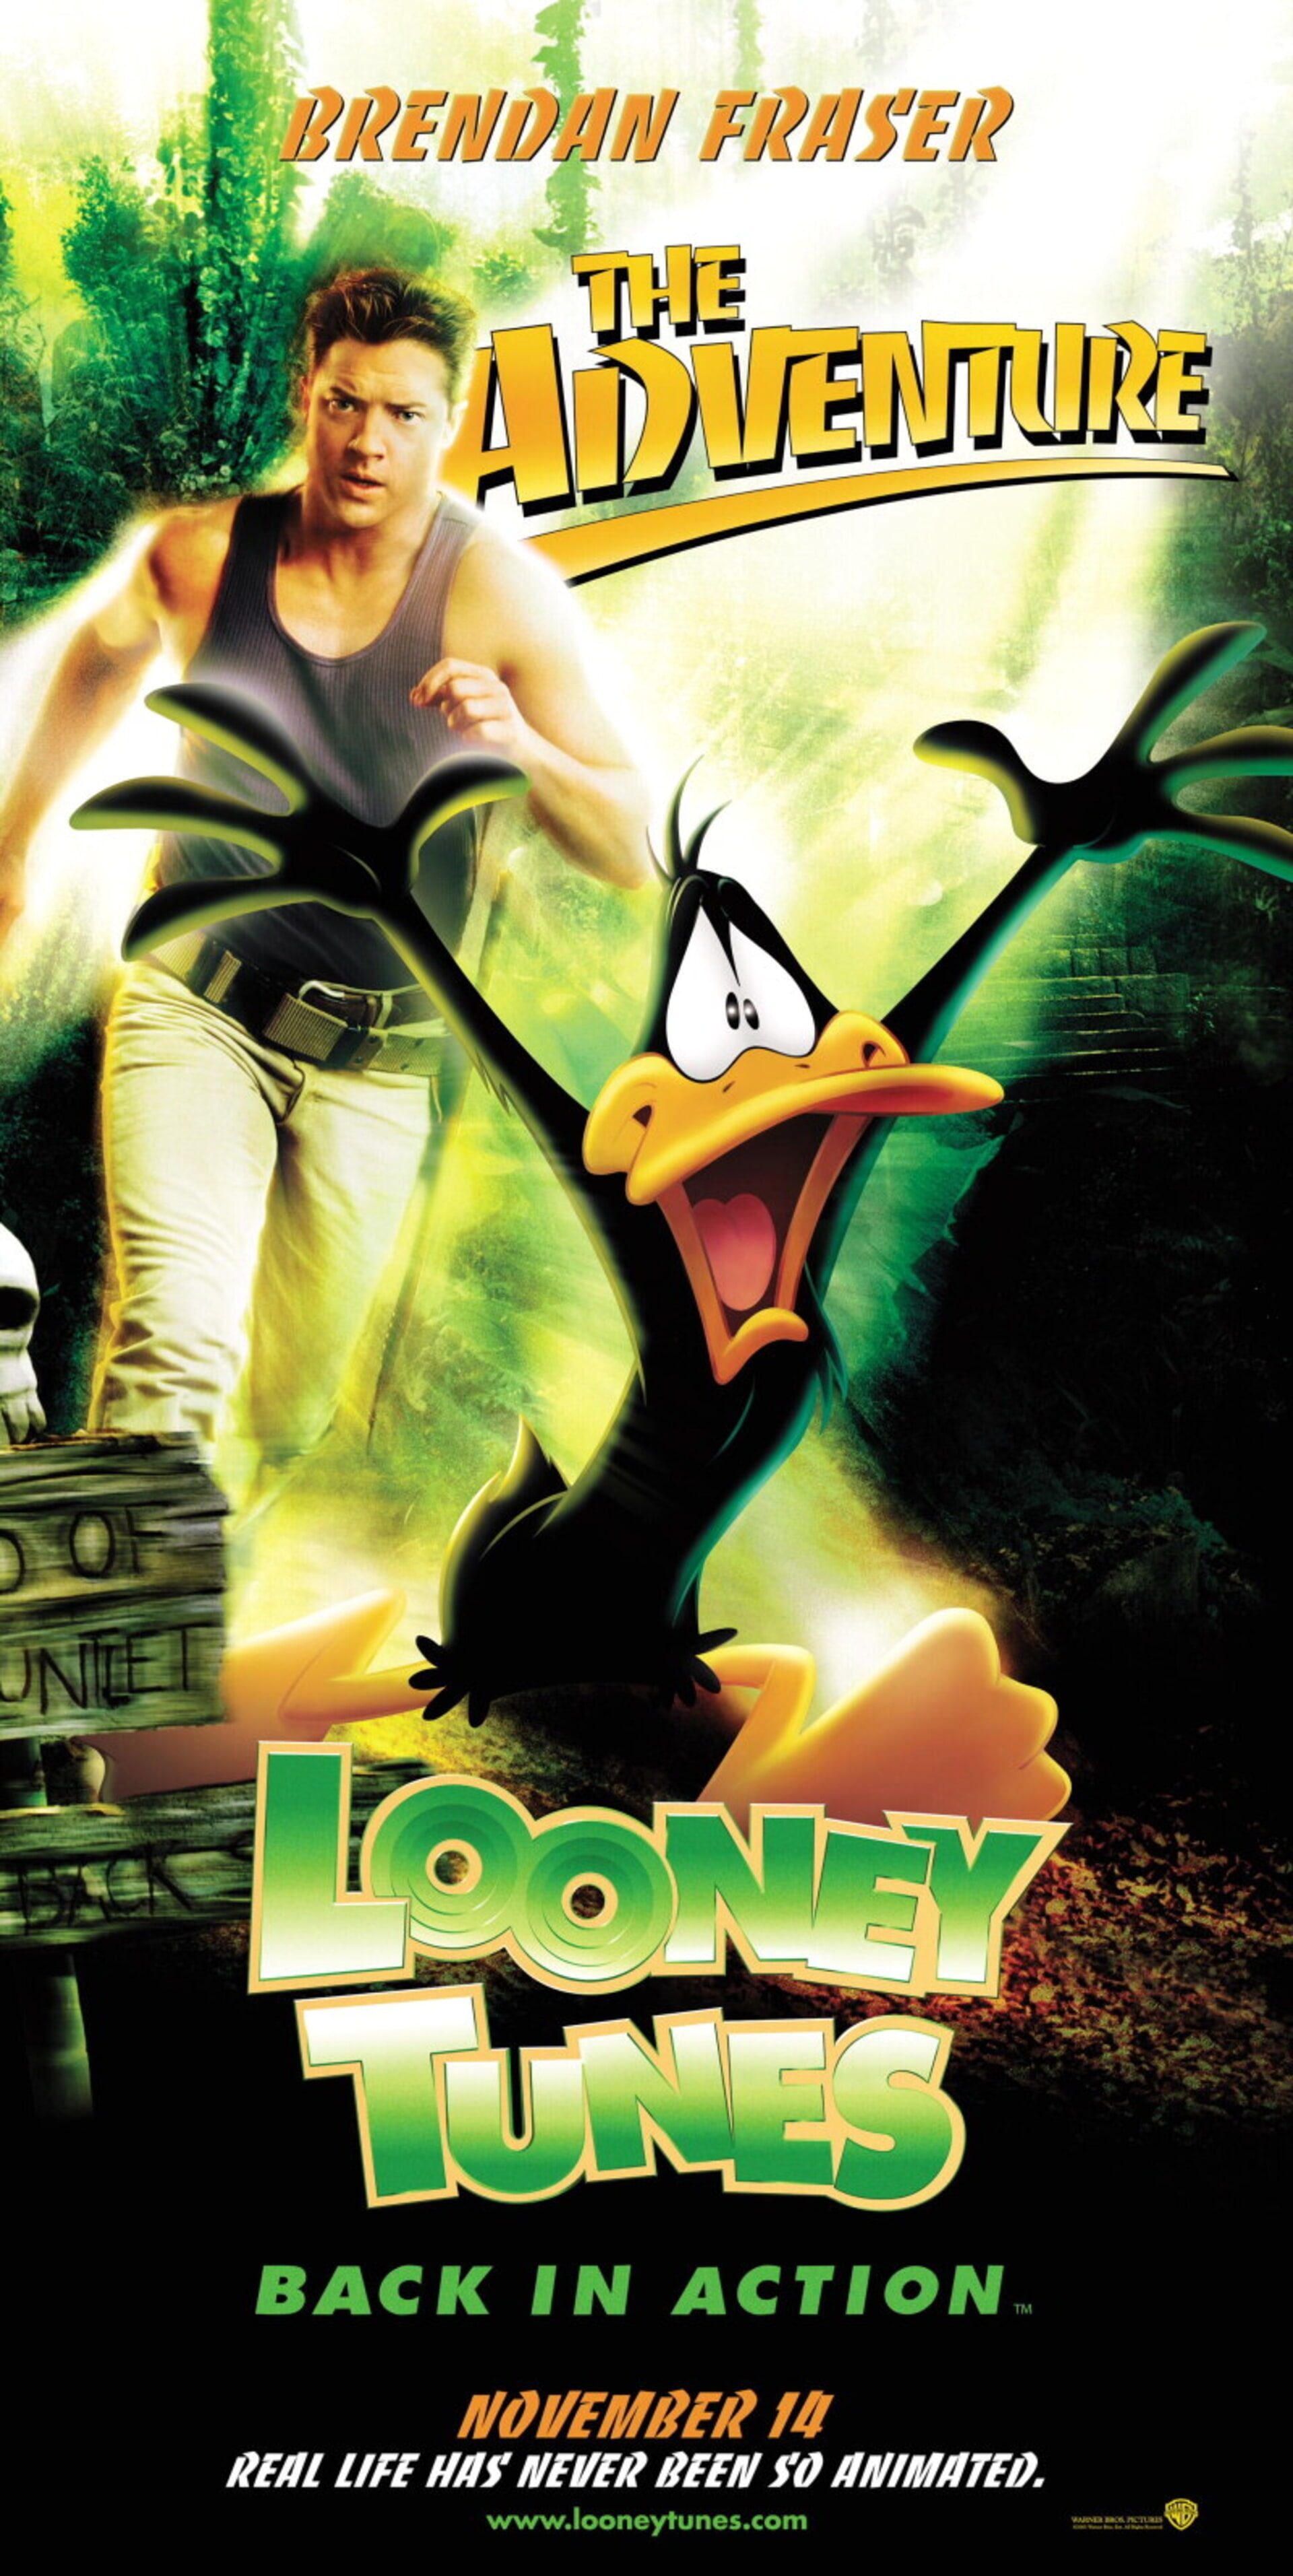 Looney Tunes: Back in Action - Poster 4